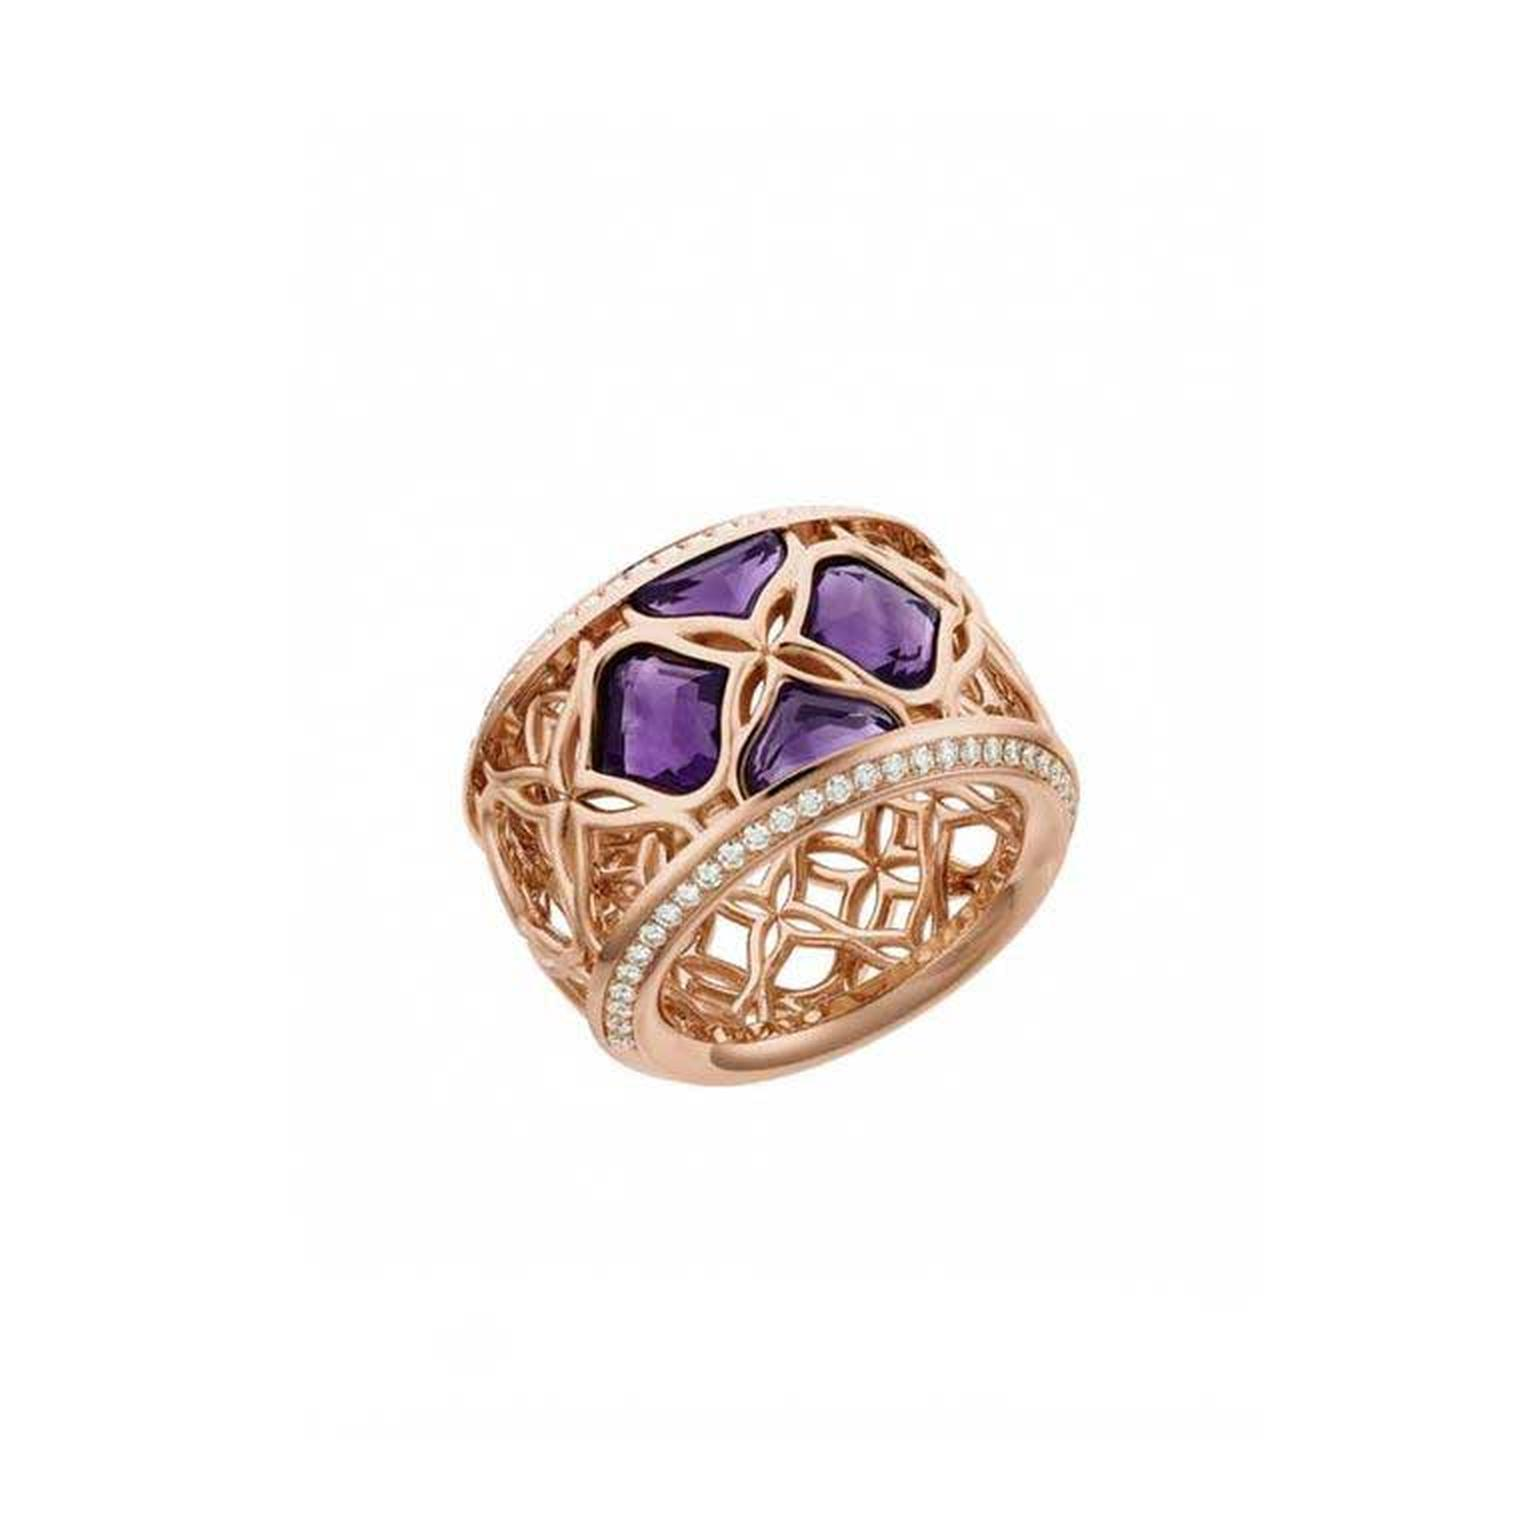 Chopard Imperiale lace ring in 18ct rose gold with amethyst and diamonds